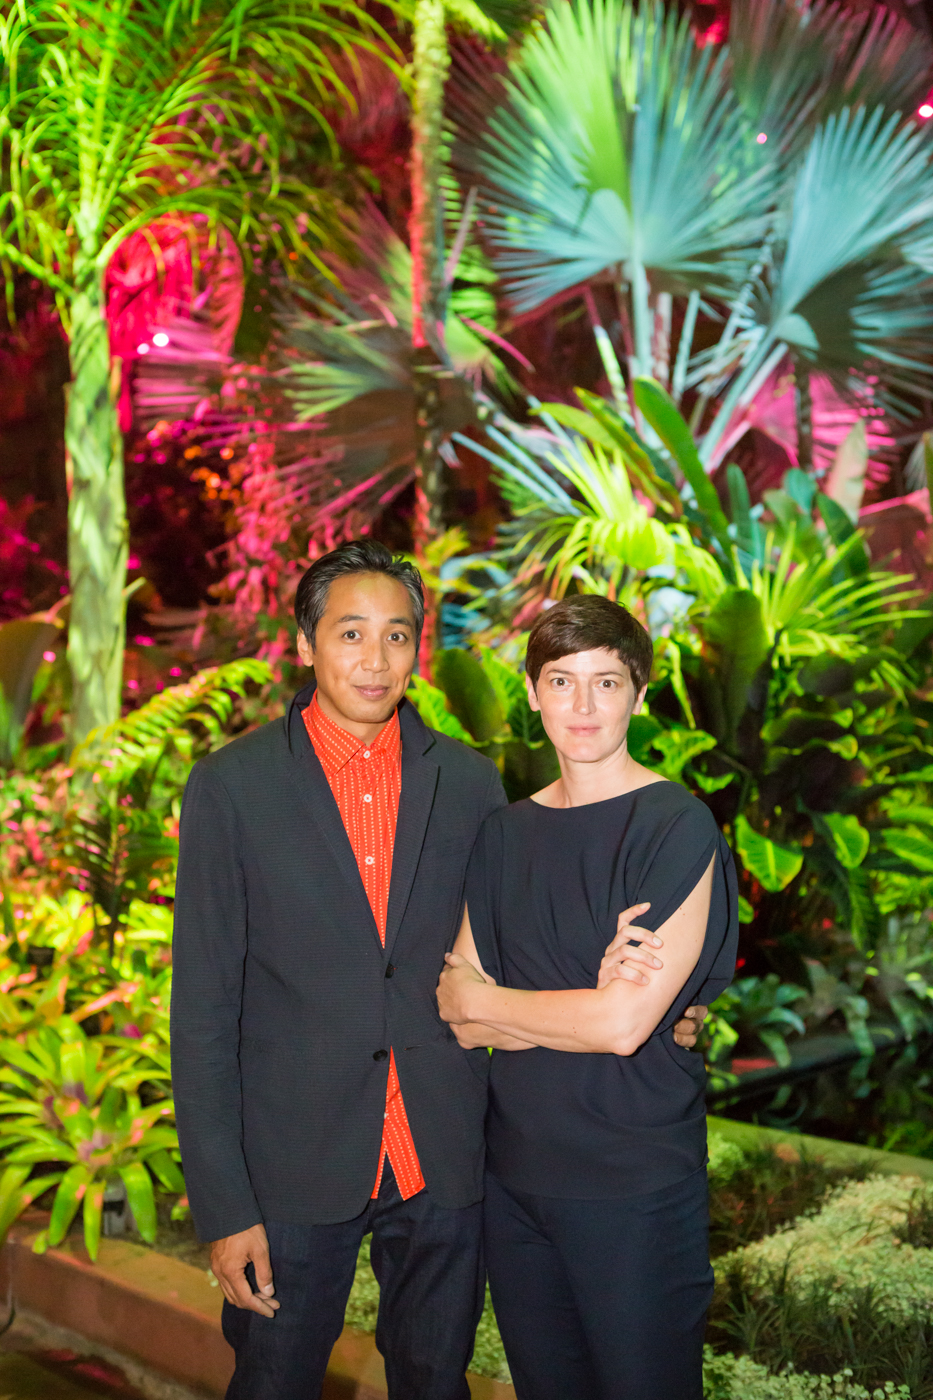 Luftwerk artists Sean Gallero and Petra Bachmaier lit by their installation.